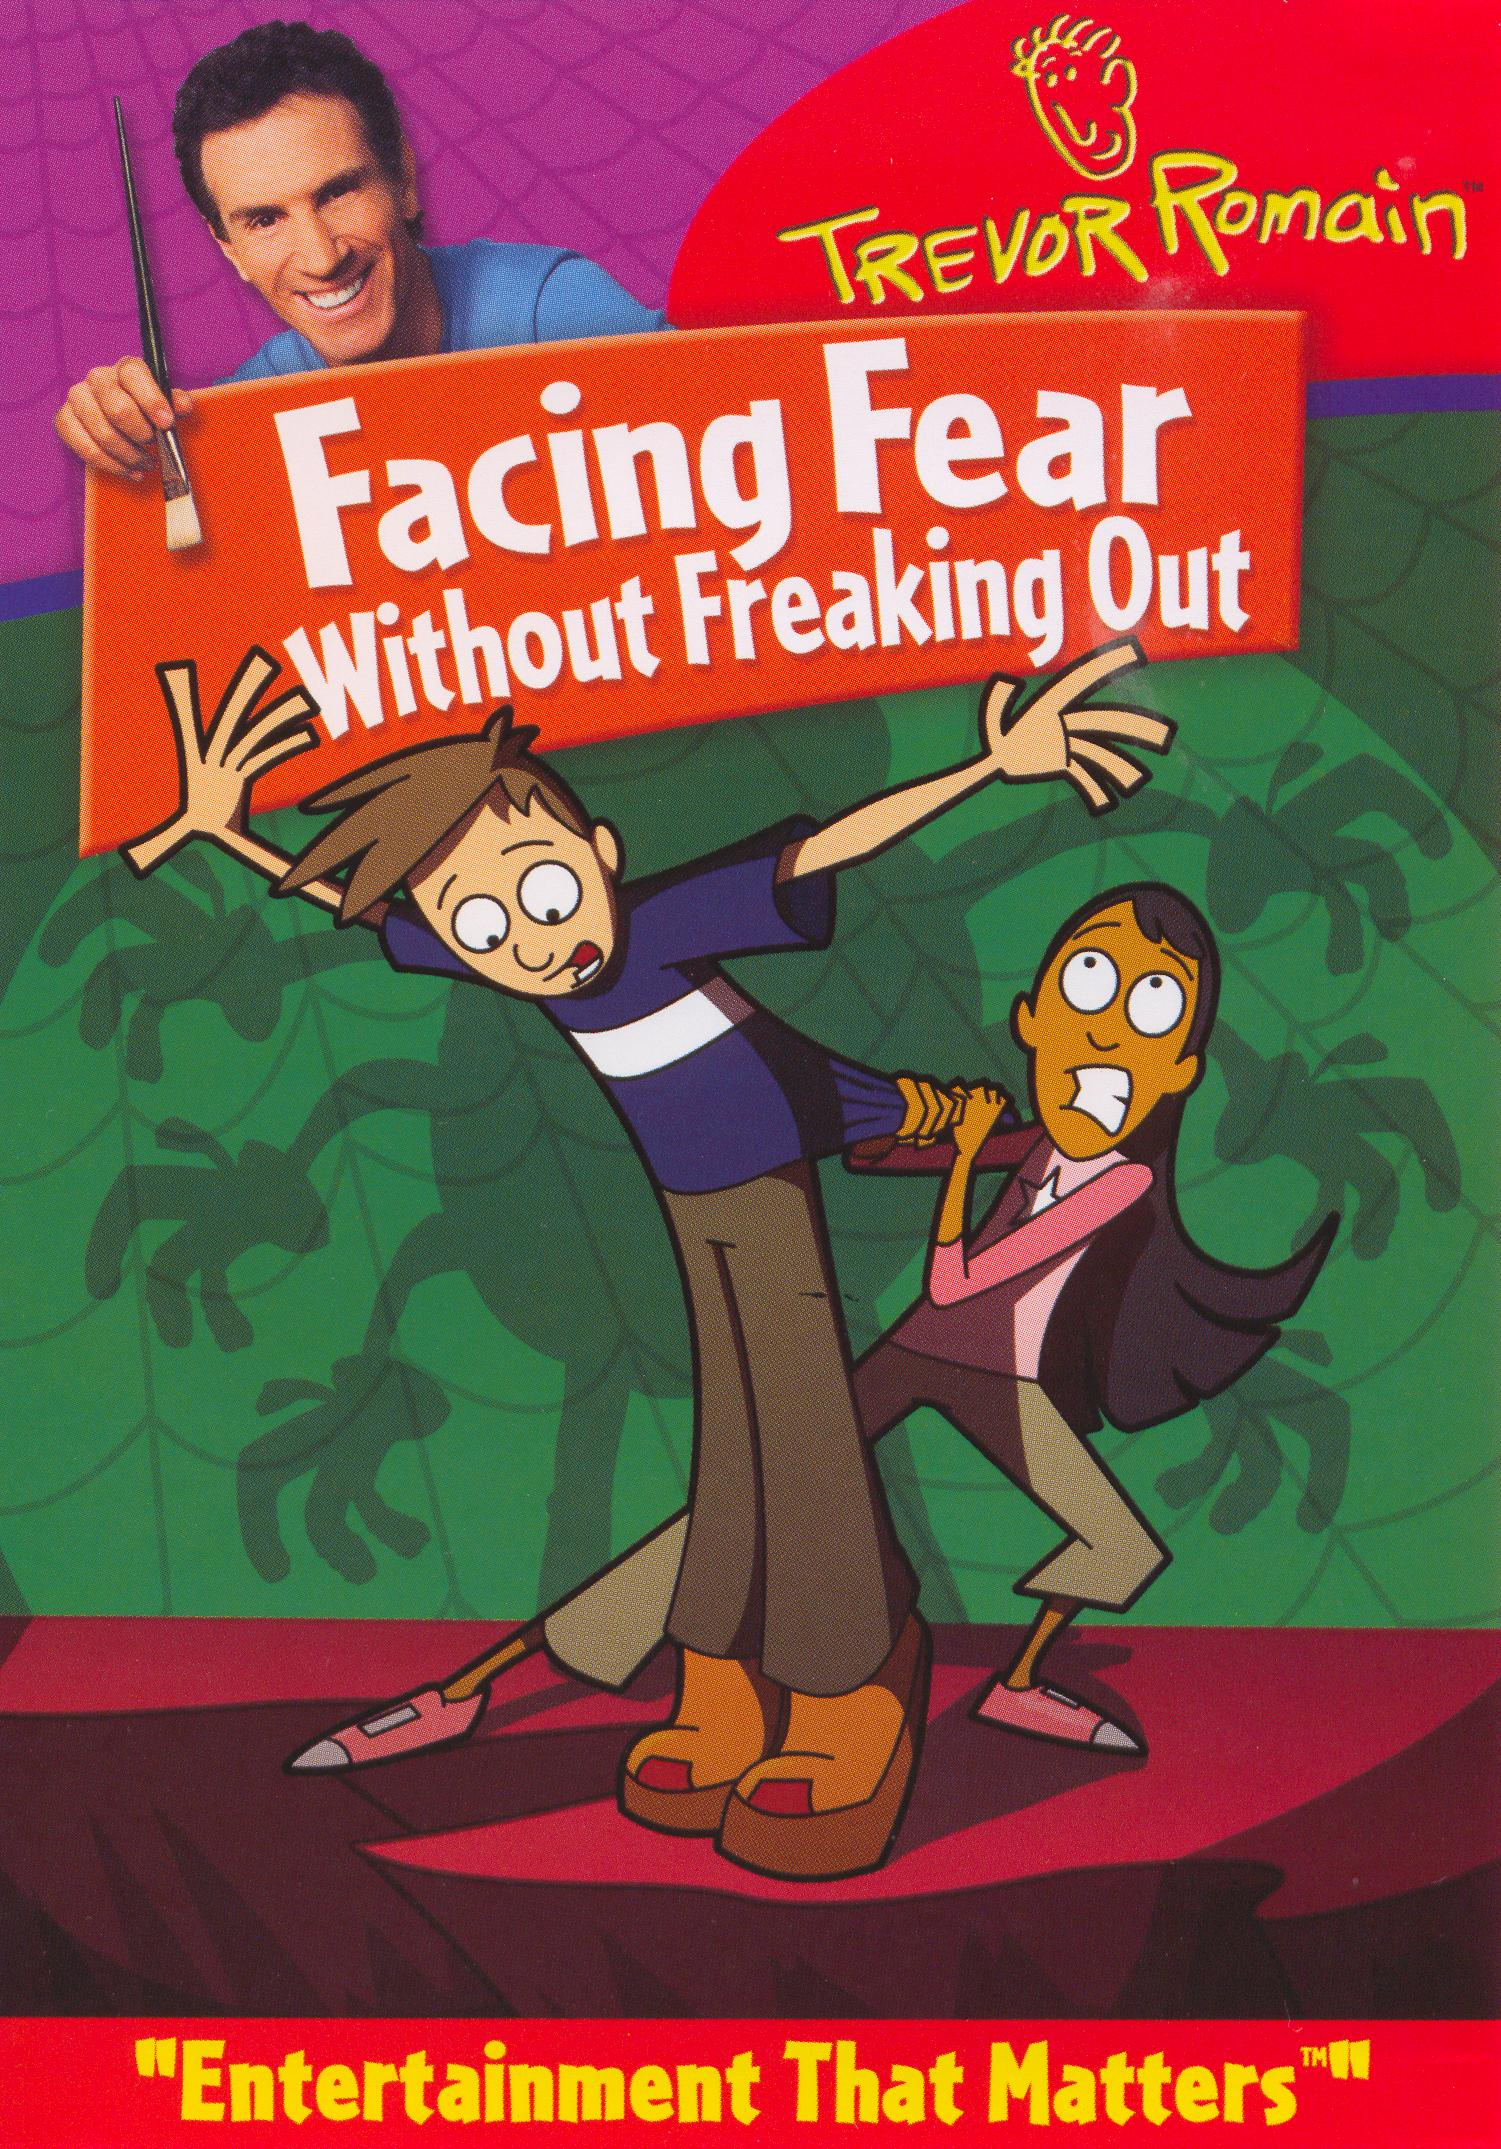 Trevor Romain: Facing Fear Without Freaking Out (2005)